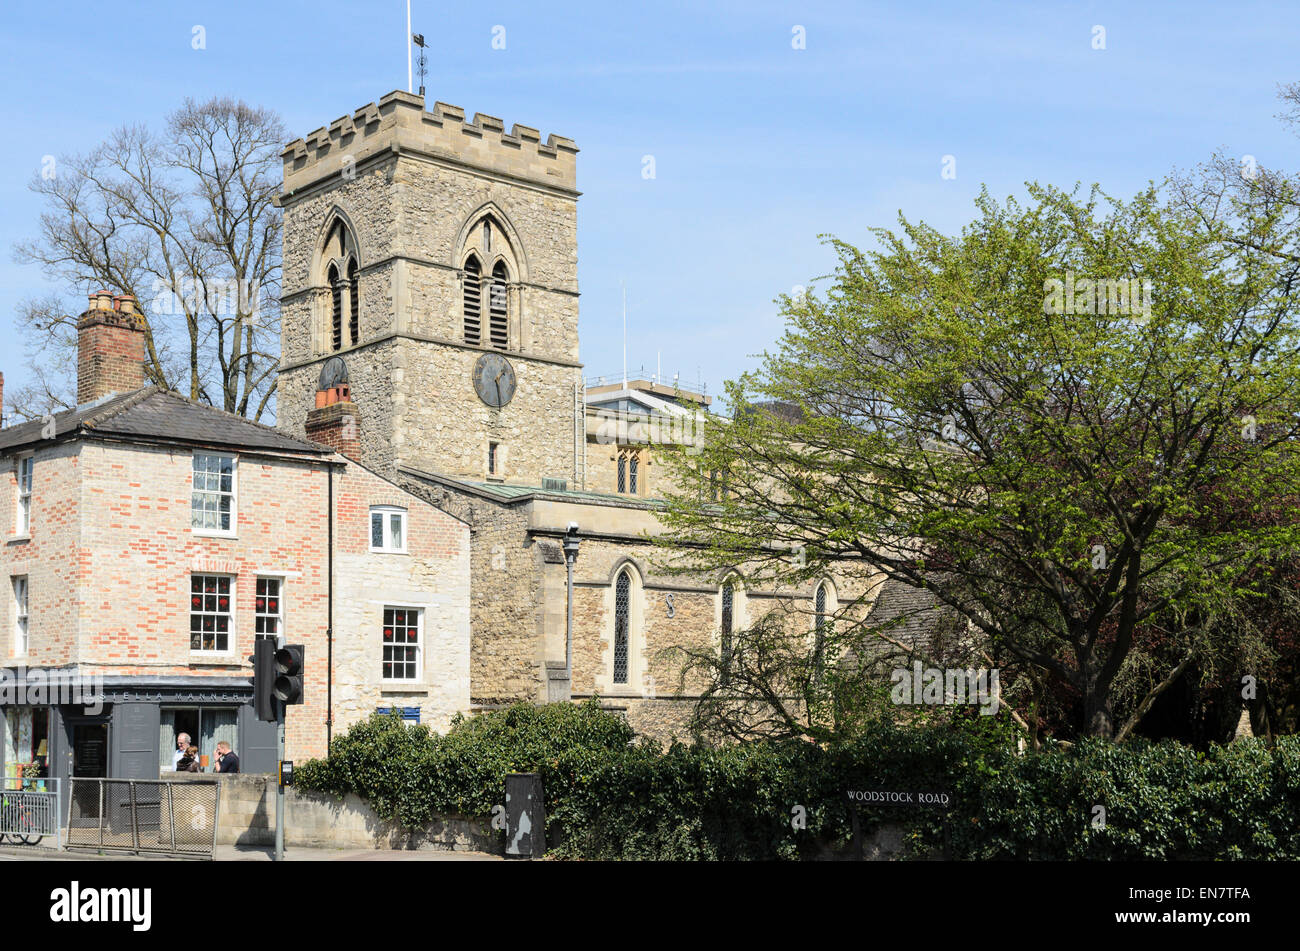 St Giles Church and adjacent shops, Woodstock Road, Oxford England, UK - Stock Image